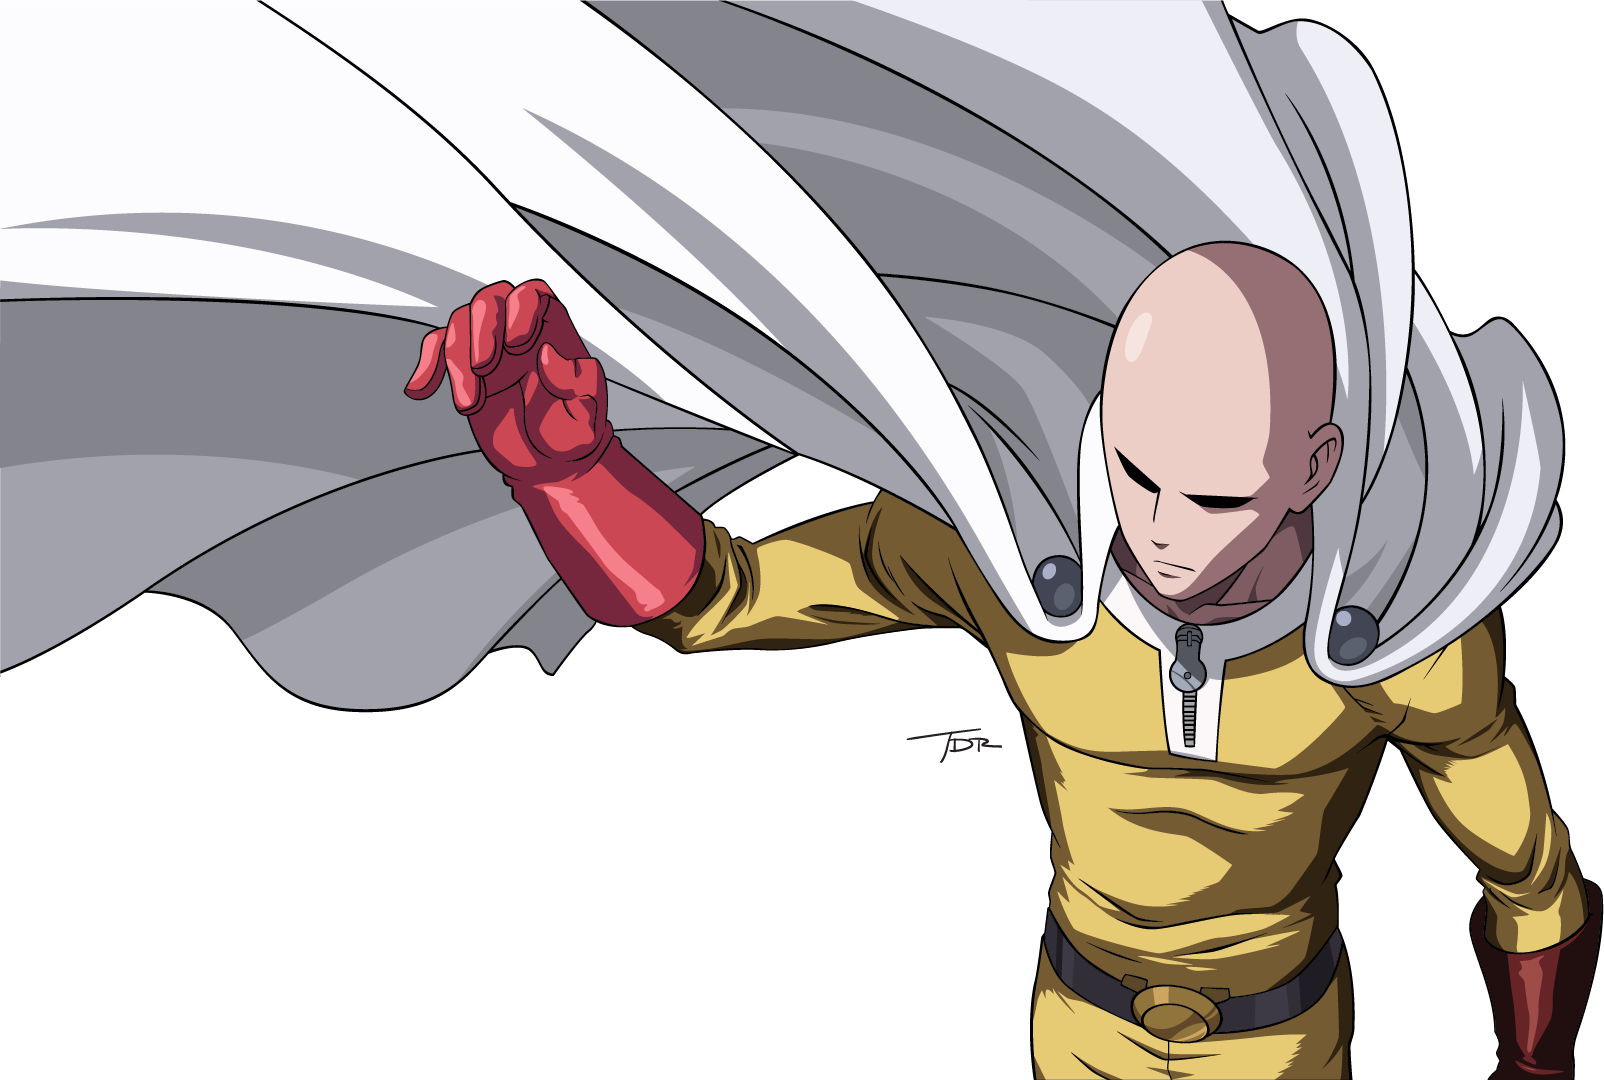 Anime One Punch Man Png - Saitama Wallpaper and Background Image | 1604x1080 | ID:676610 ...